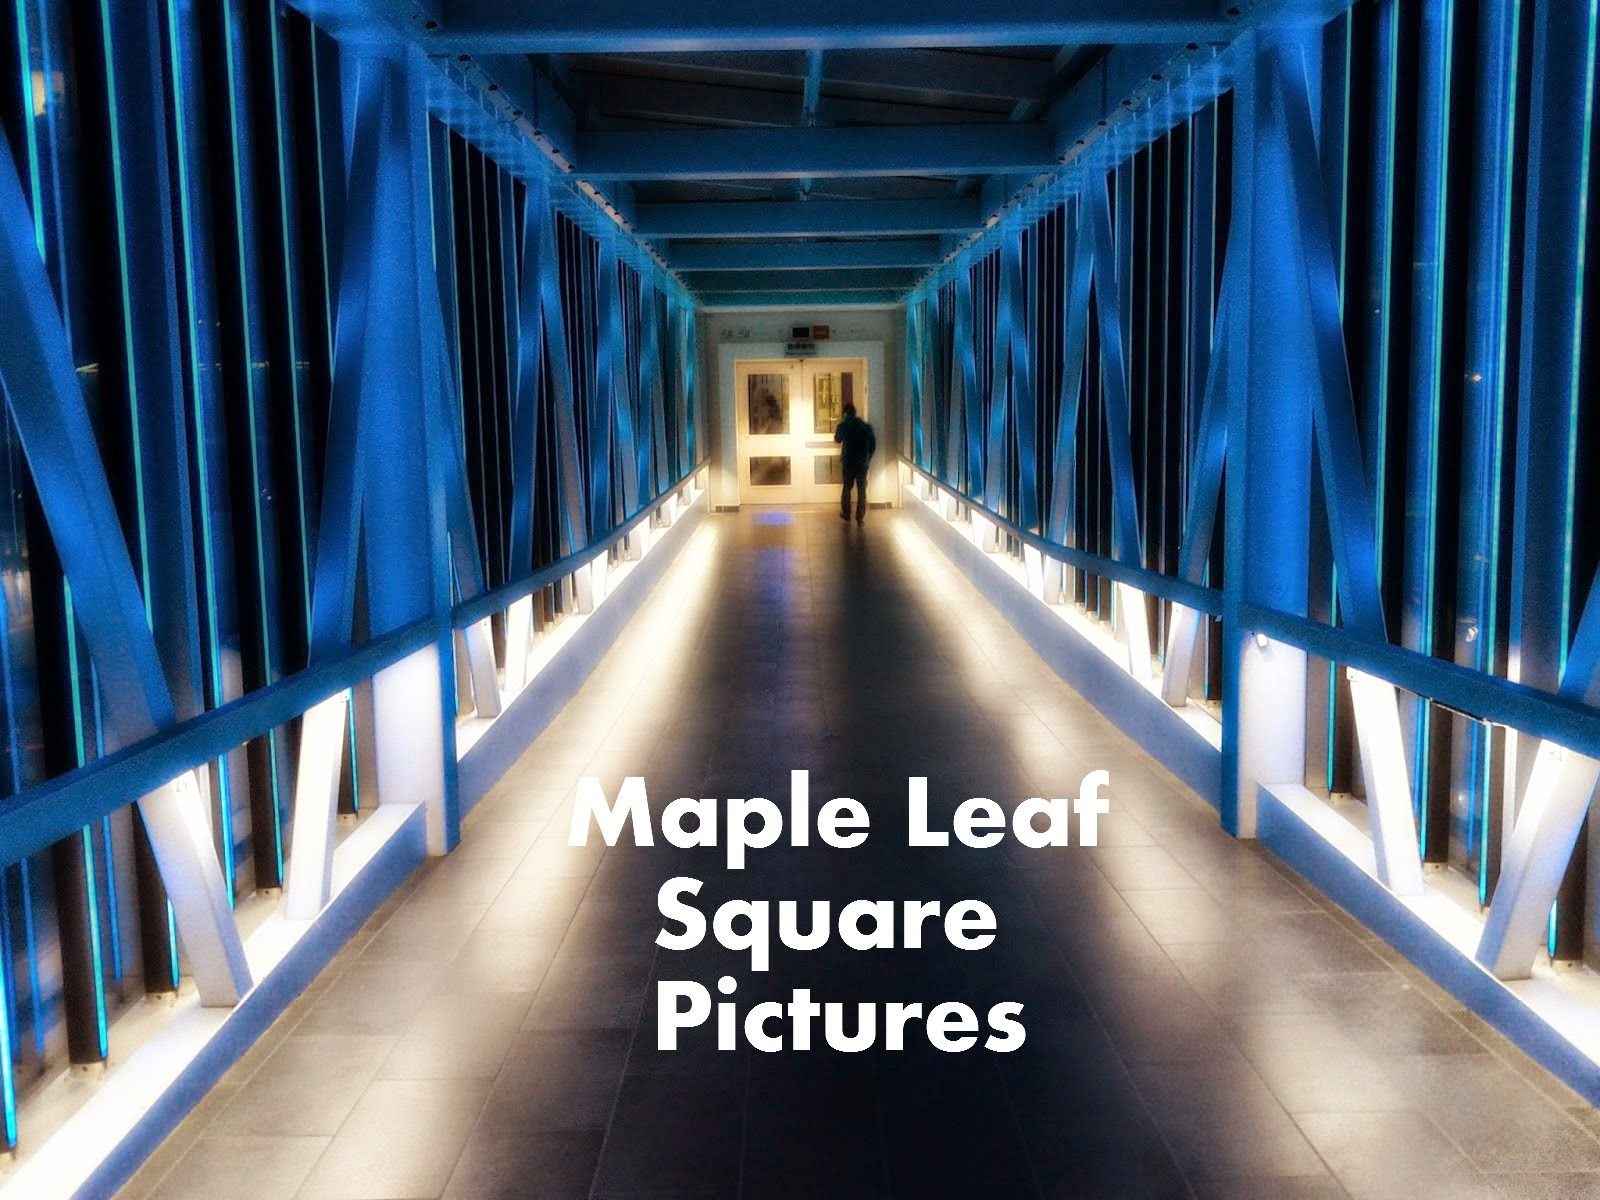 Maple Leaf Square Pictures